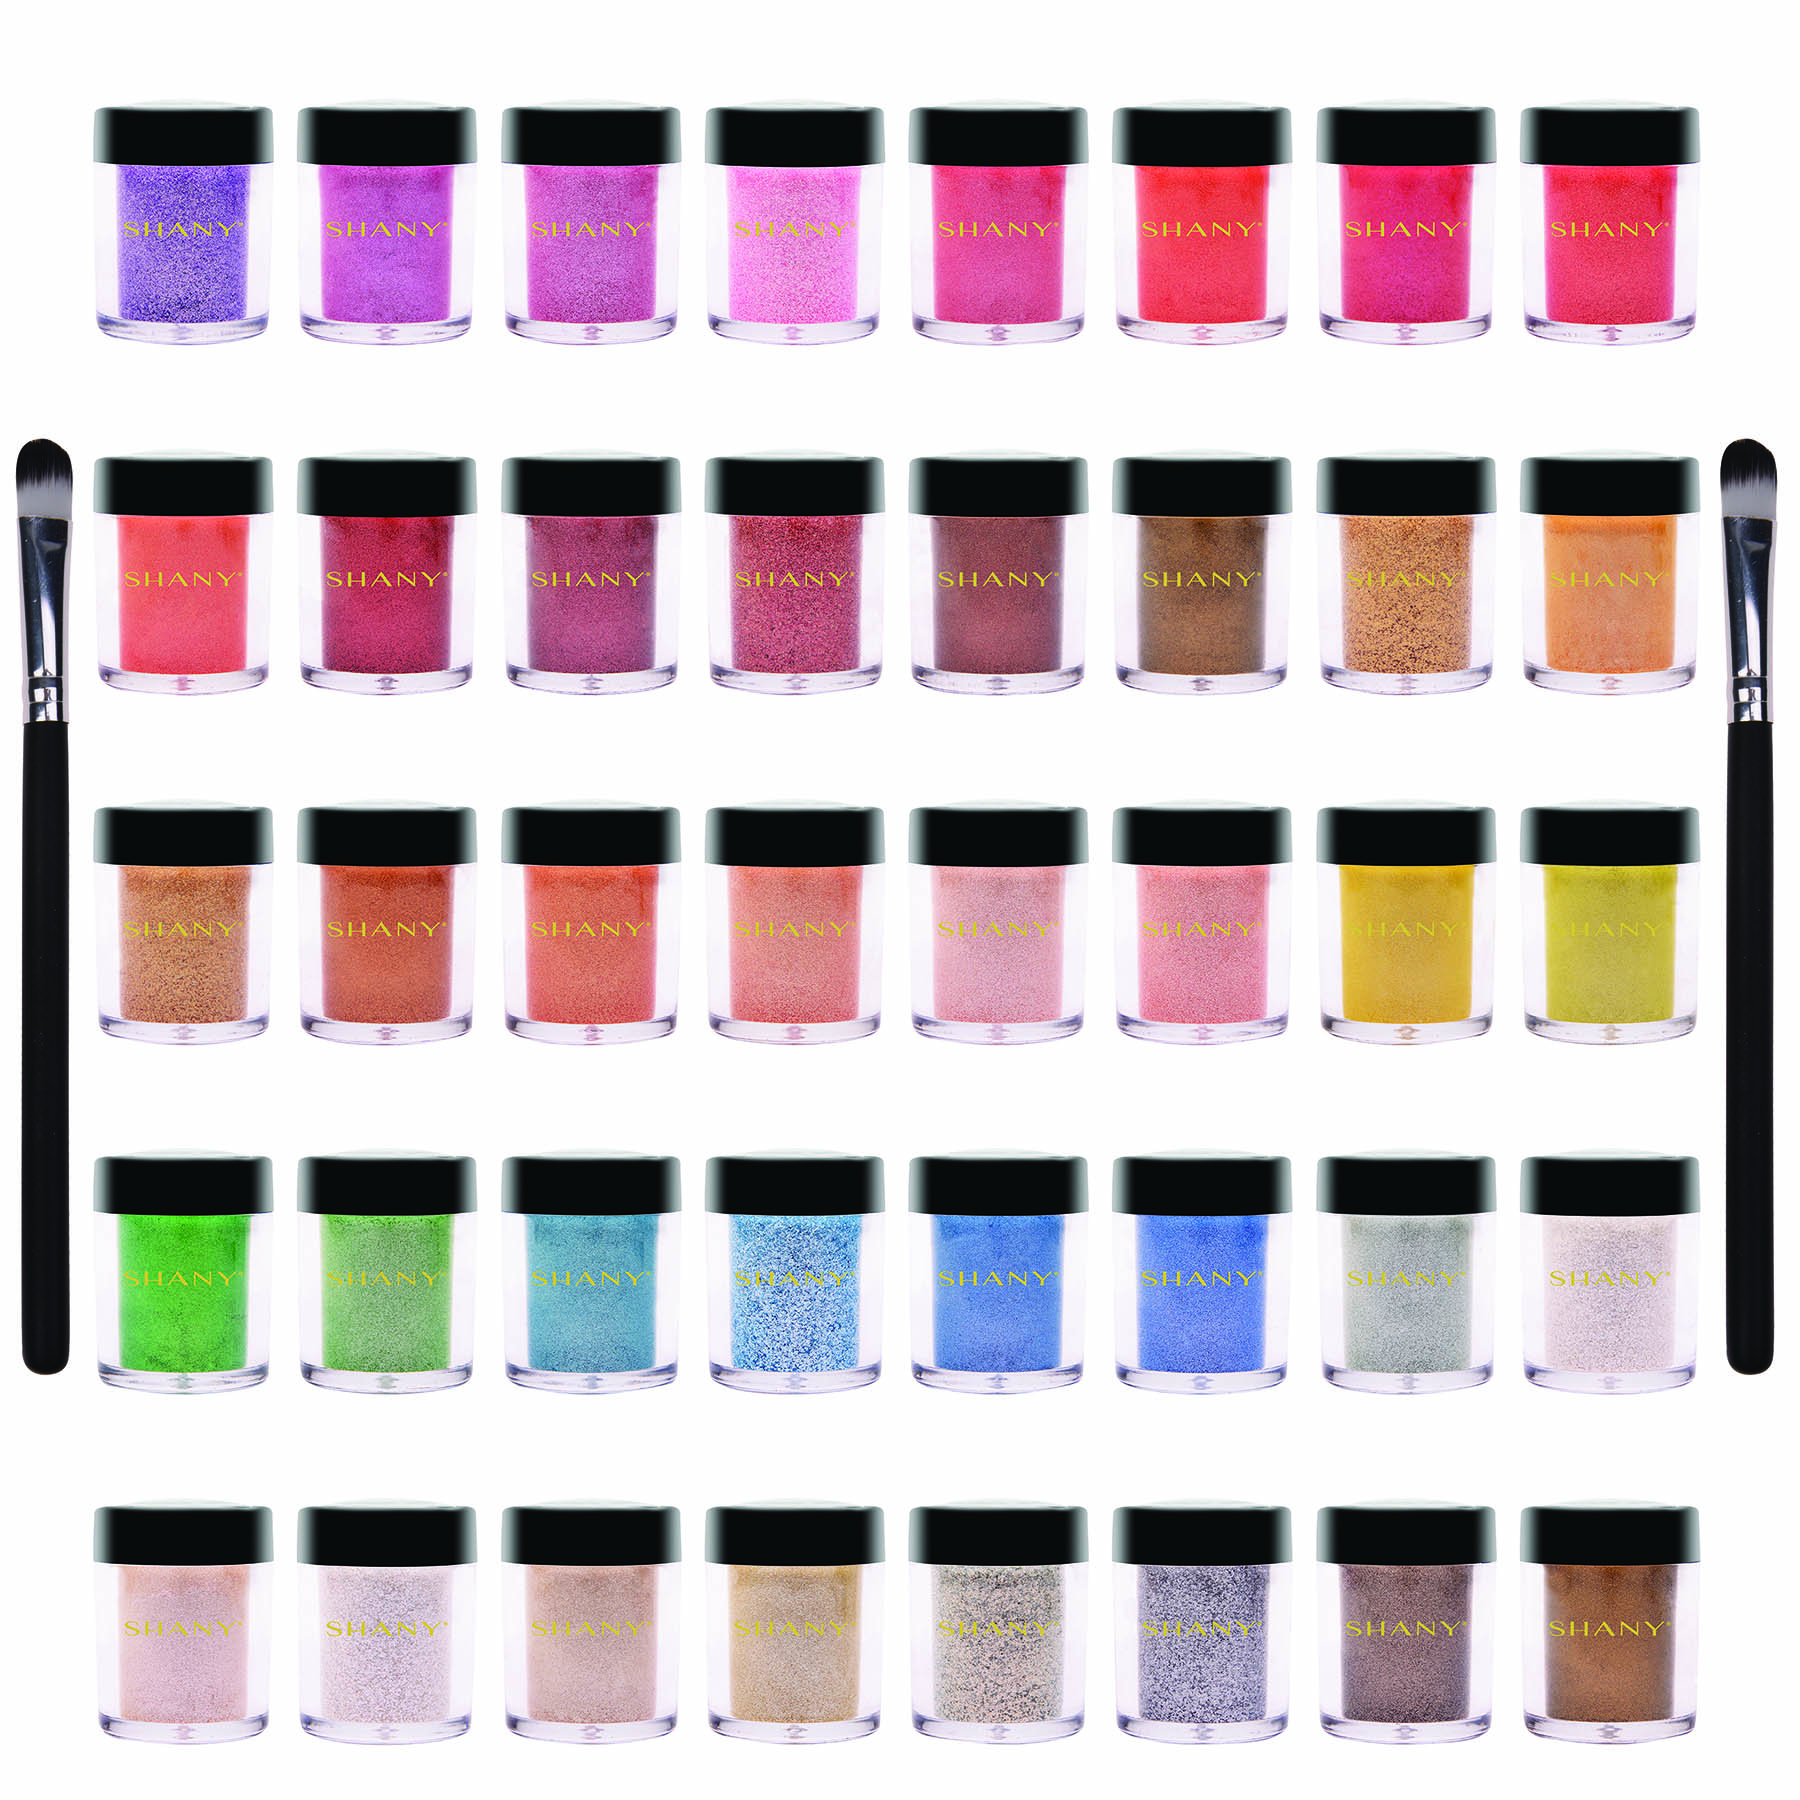 SHANY Loose Pearl Eye Shadow Glitter with Two Shadow Brushes, 42 pc